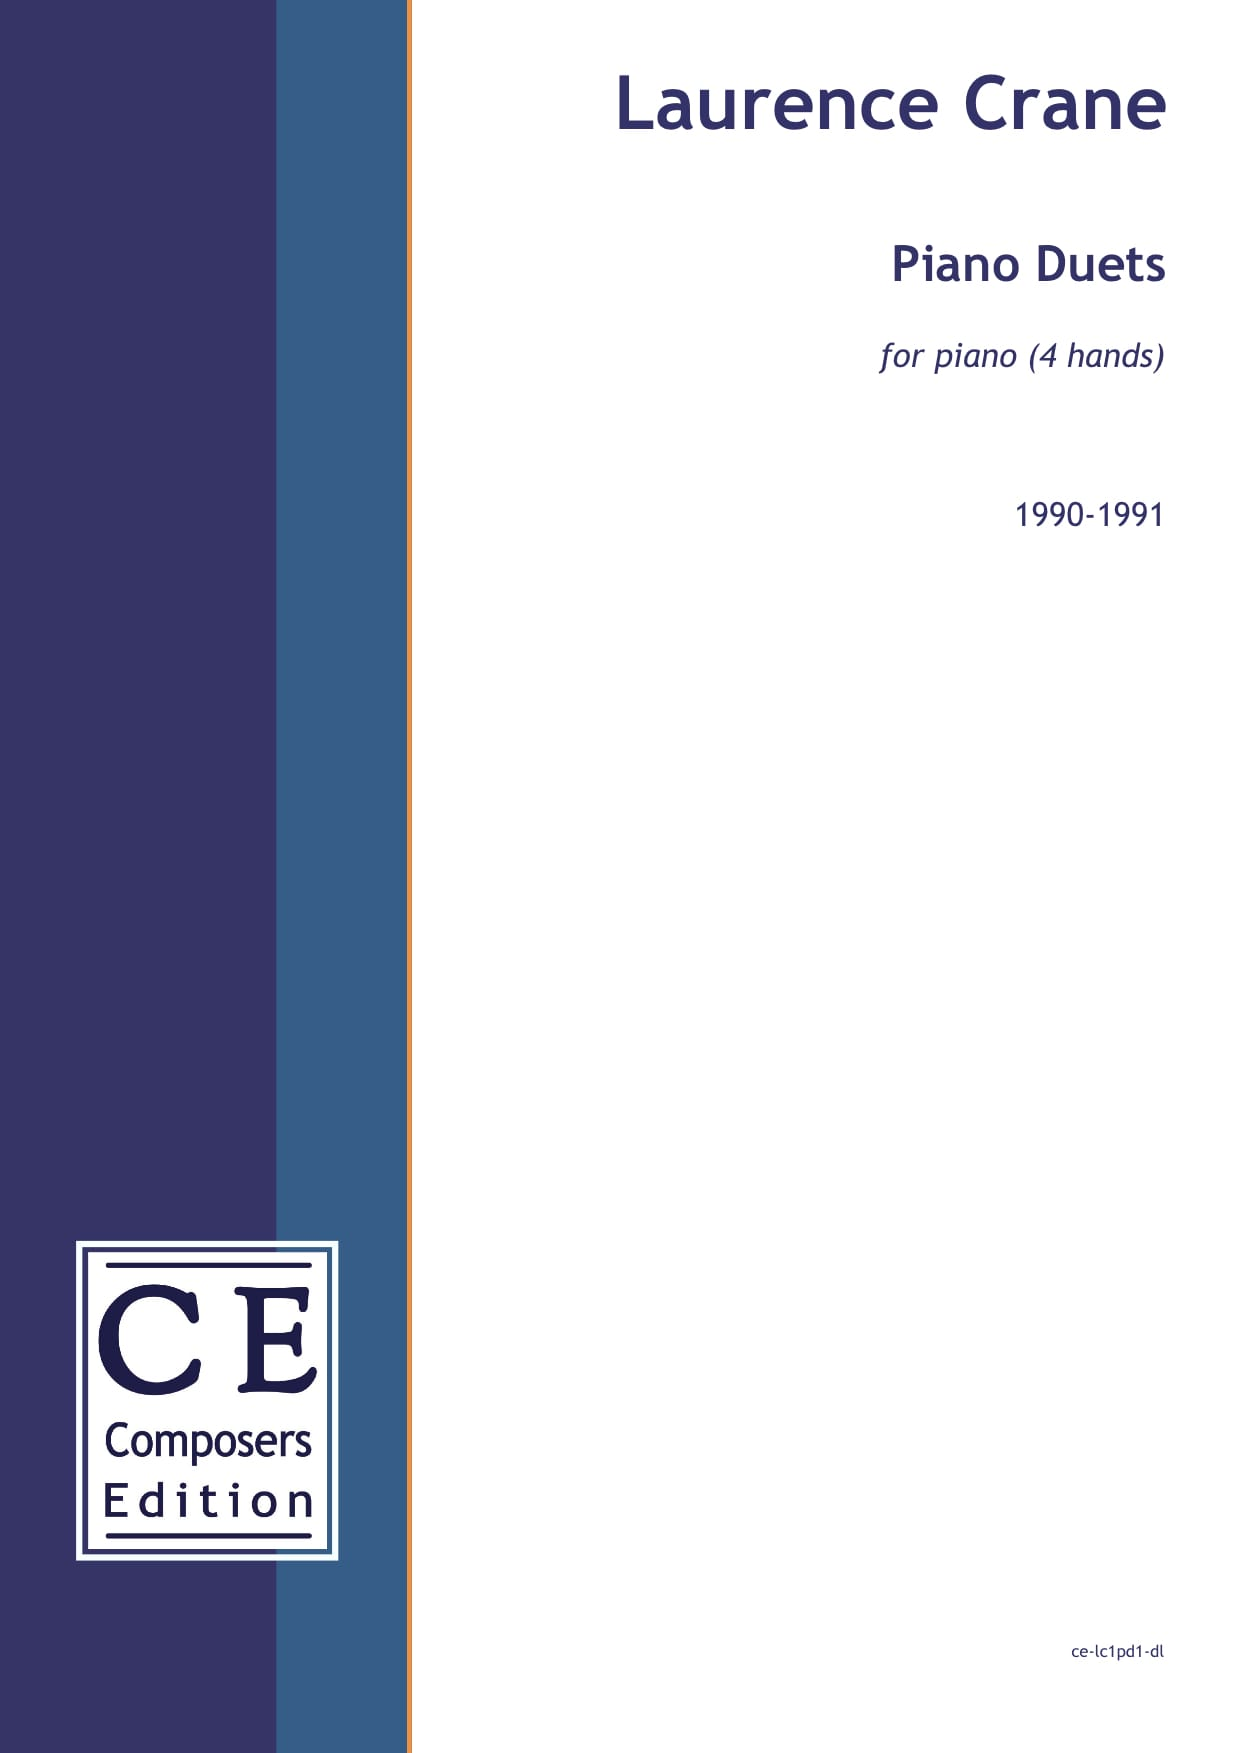 Laurence Crane: Piano Duets for piano (4 hands)